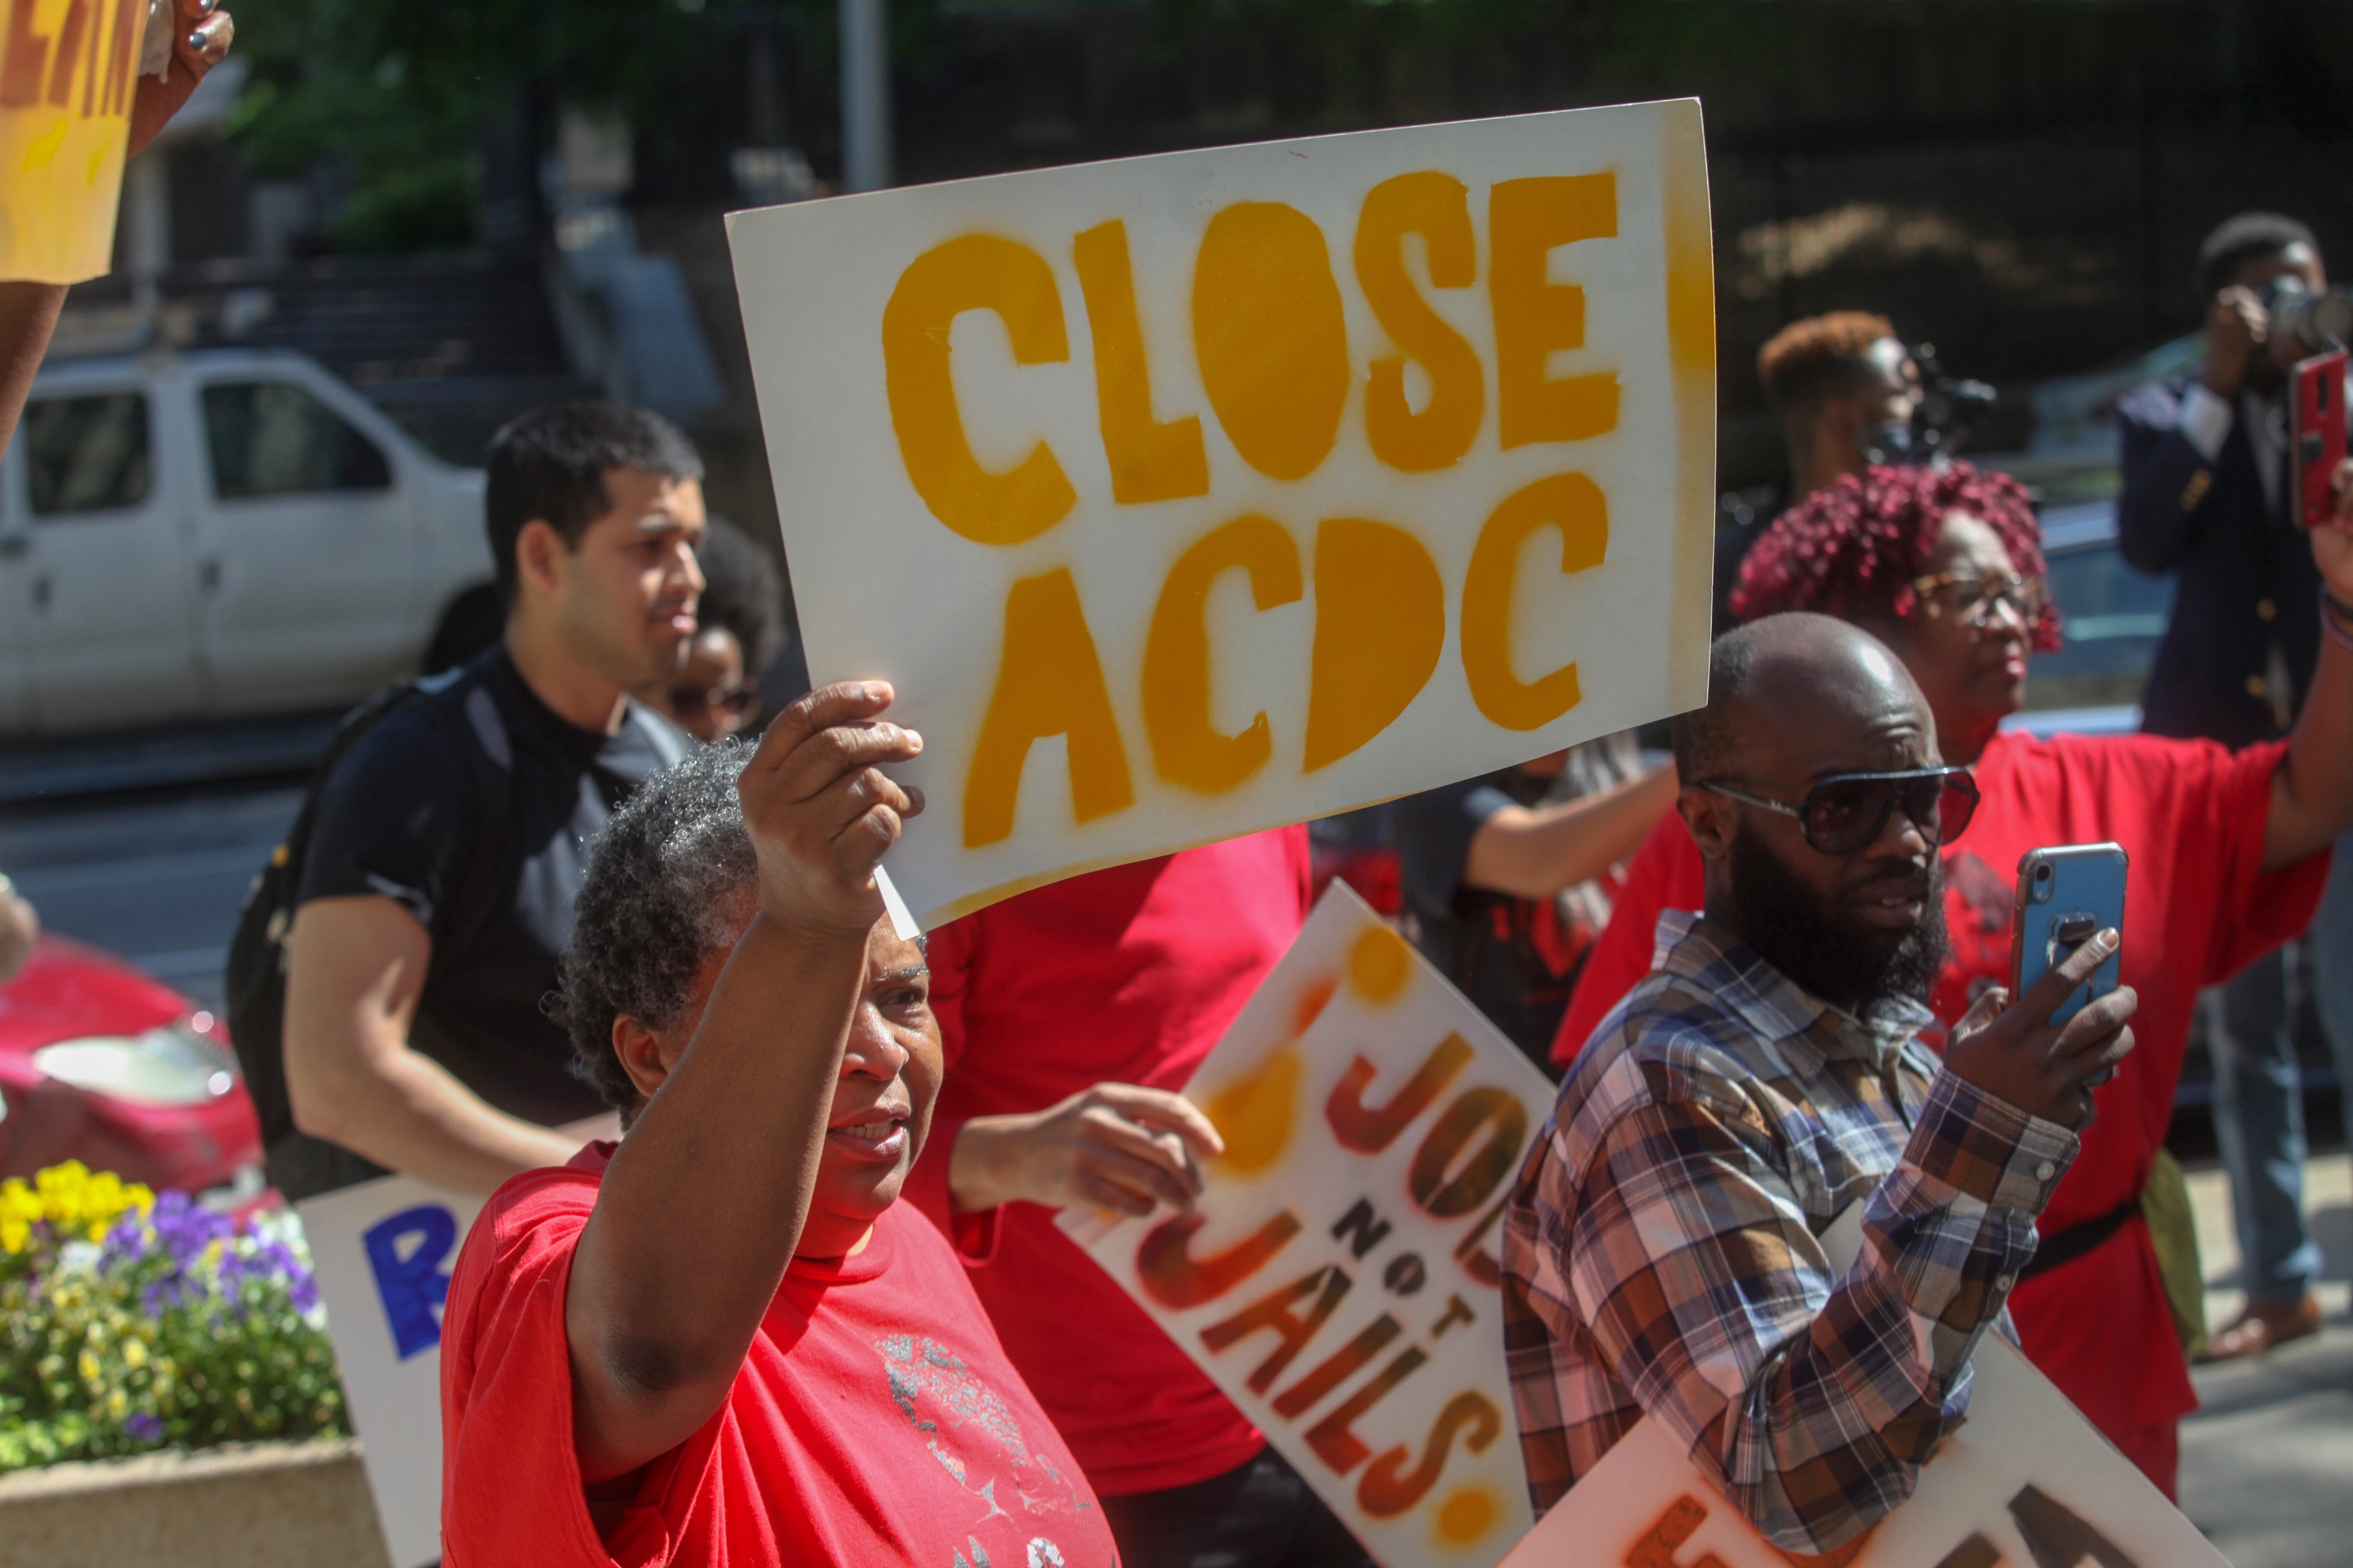 """Organizers stand with red shirts, one woman has sign that says """"Close ACDC"""" and another has a sign that says """"Jobs Not Jails"""""""